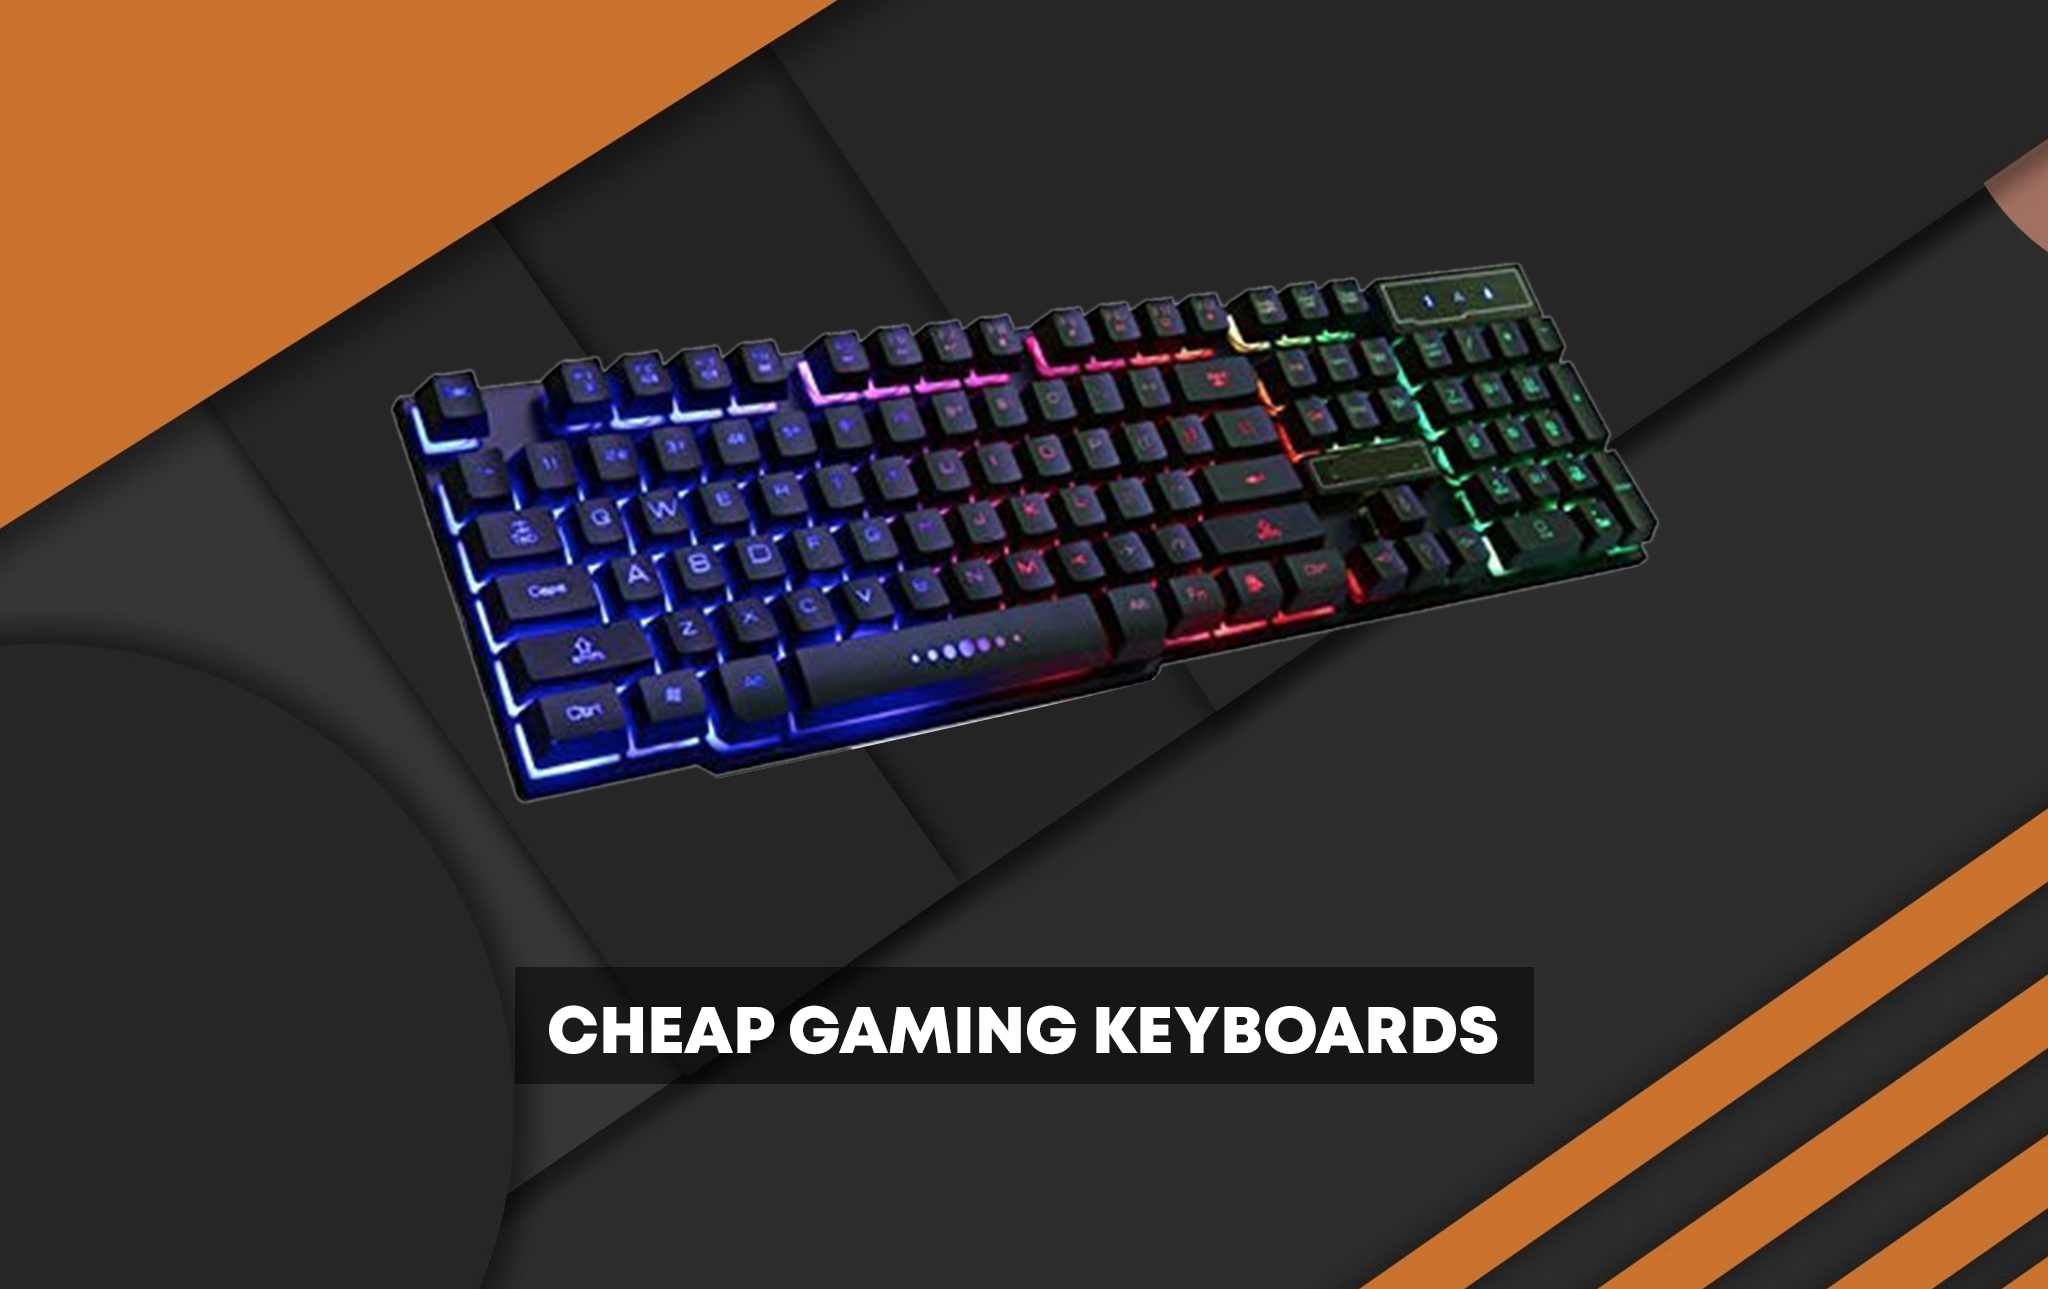 a37a9d03f25 Best Cheap Gaming Keyboards (Reviews + Buyer's Guide)